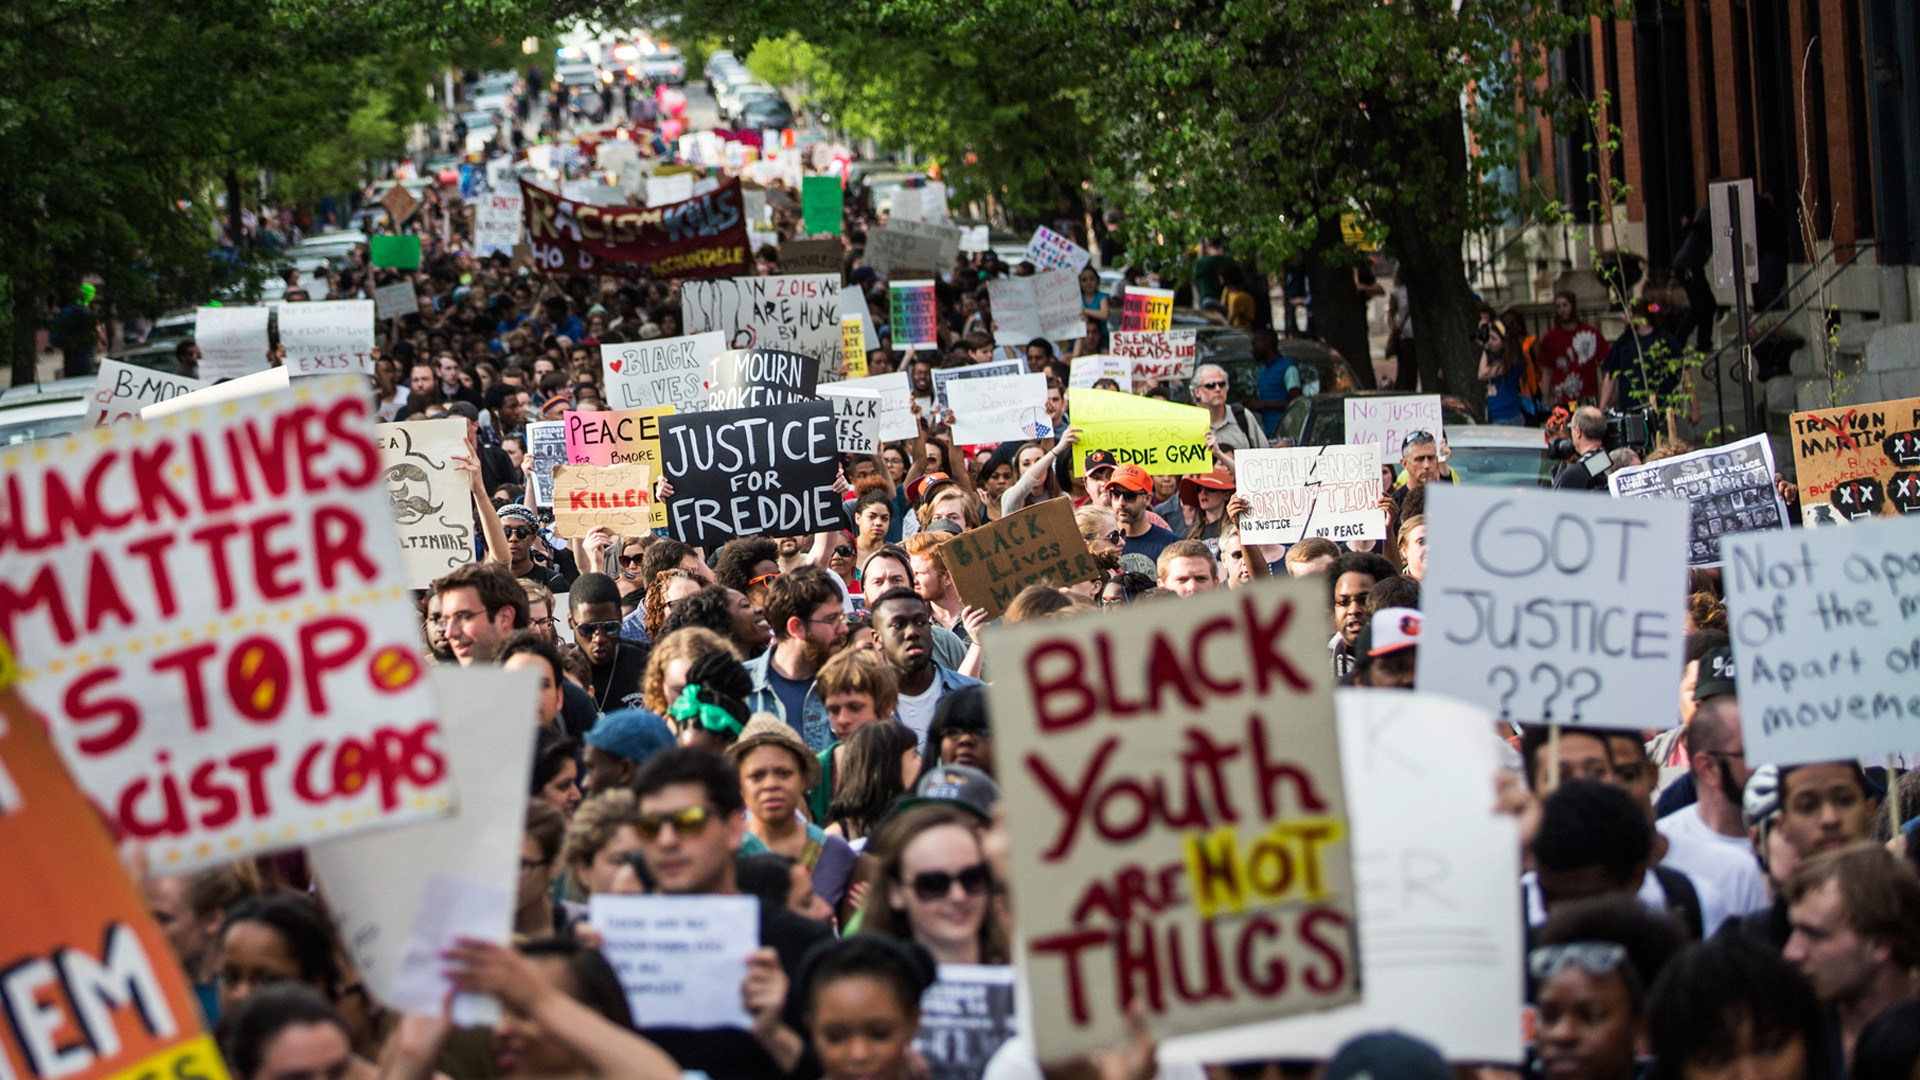 BALTIMORE, MD - APRIL 29:  Students from Baltimore colleges and high schools march in protest chanting 'Justice for Freddie G